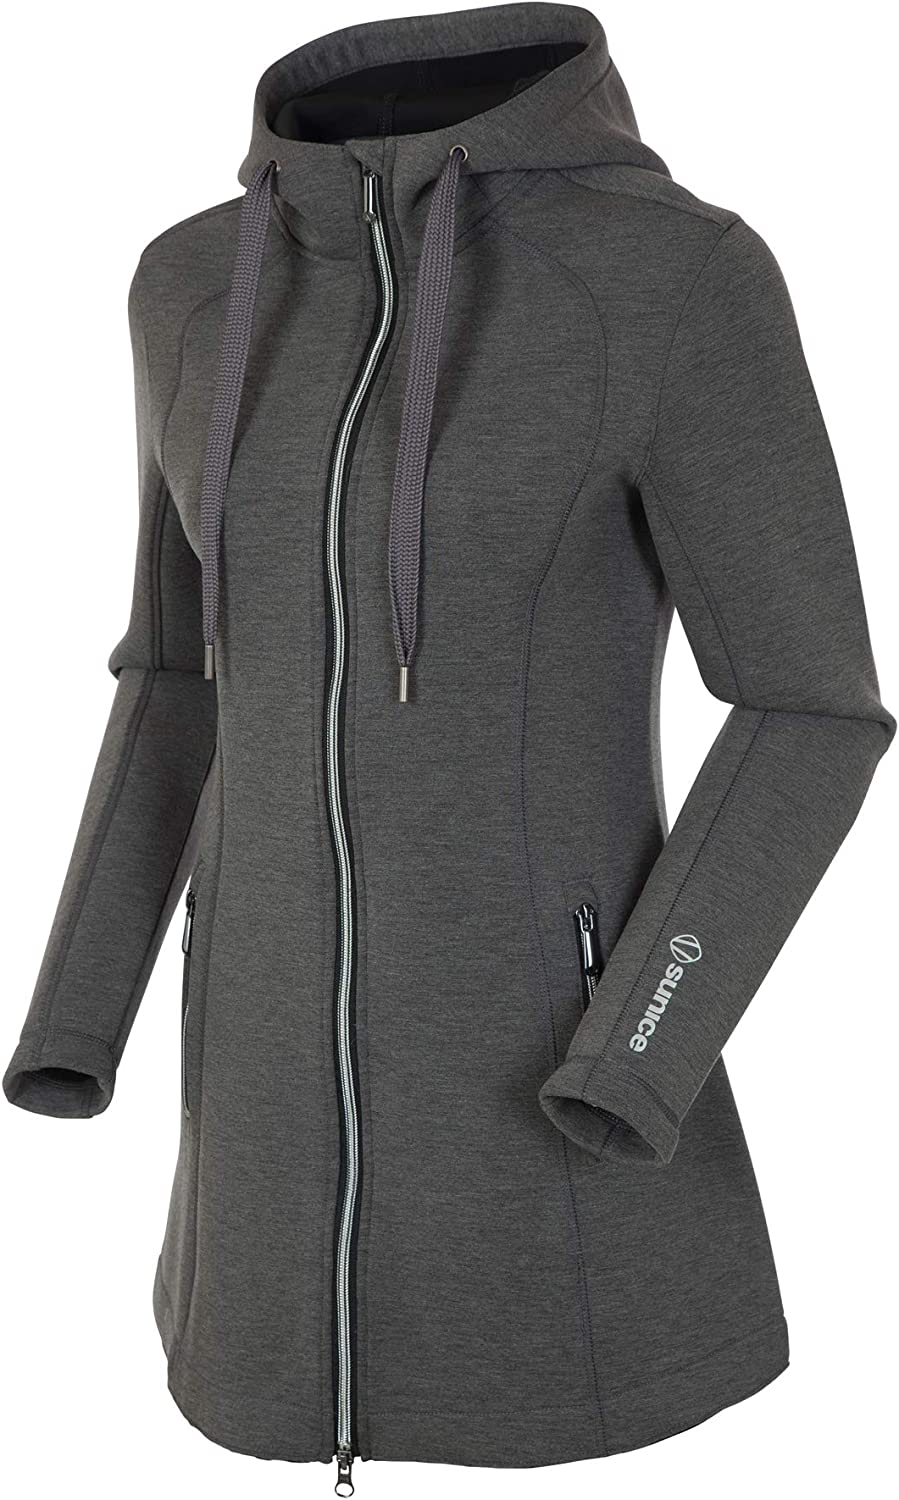 Softshell Zip Up Jacket with Thermal Insulation Sunice Bobbie Womens Hoodie